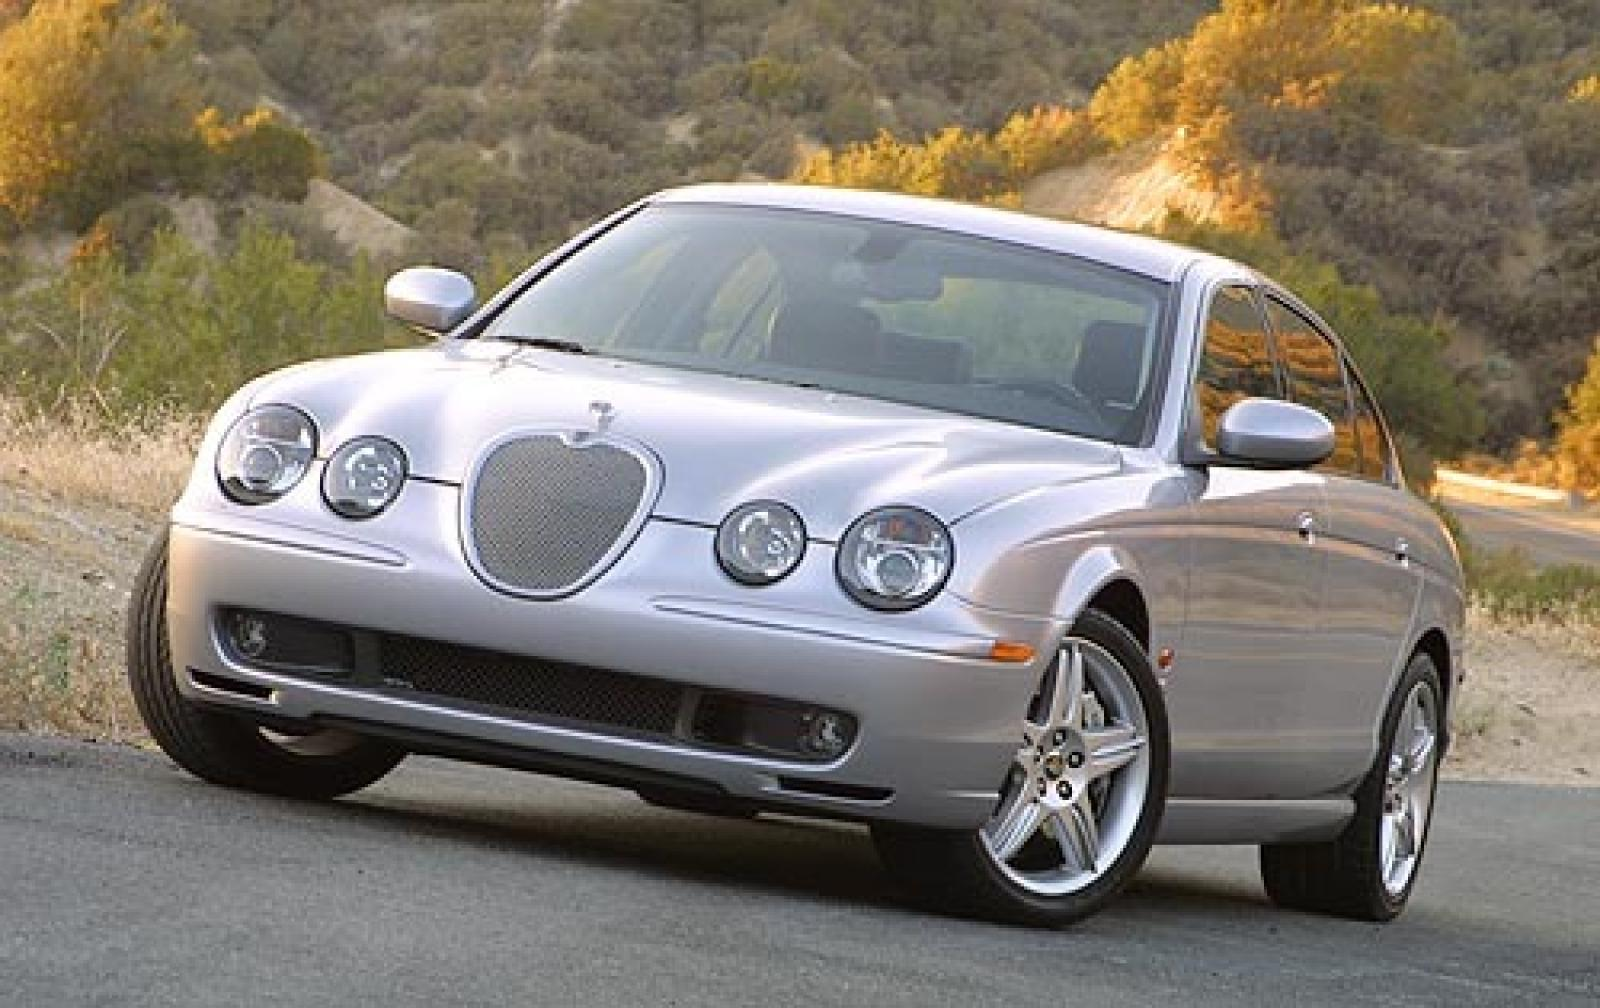 2004 jaguar s type information and photos zombiedrive. Black Bedroom Furniture Sets. Home Design Ideas